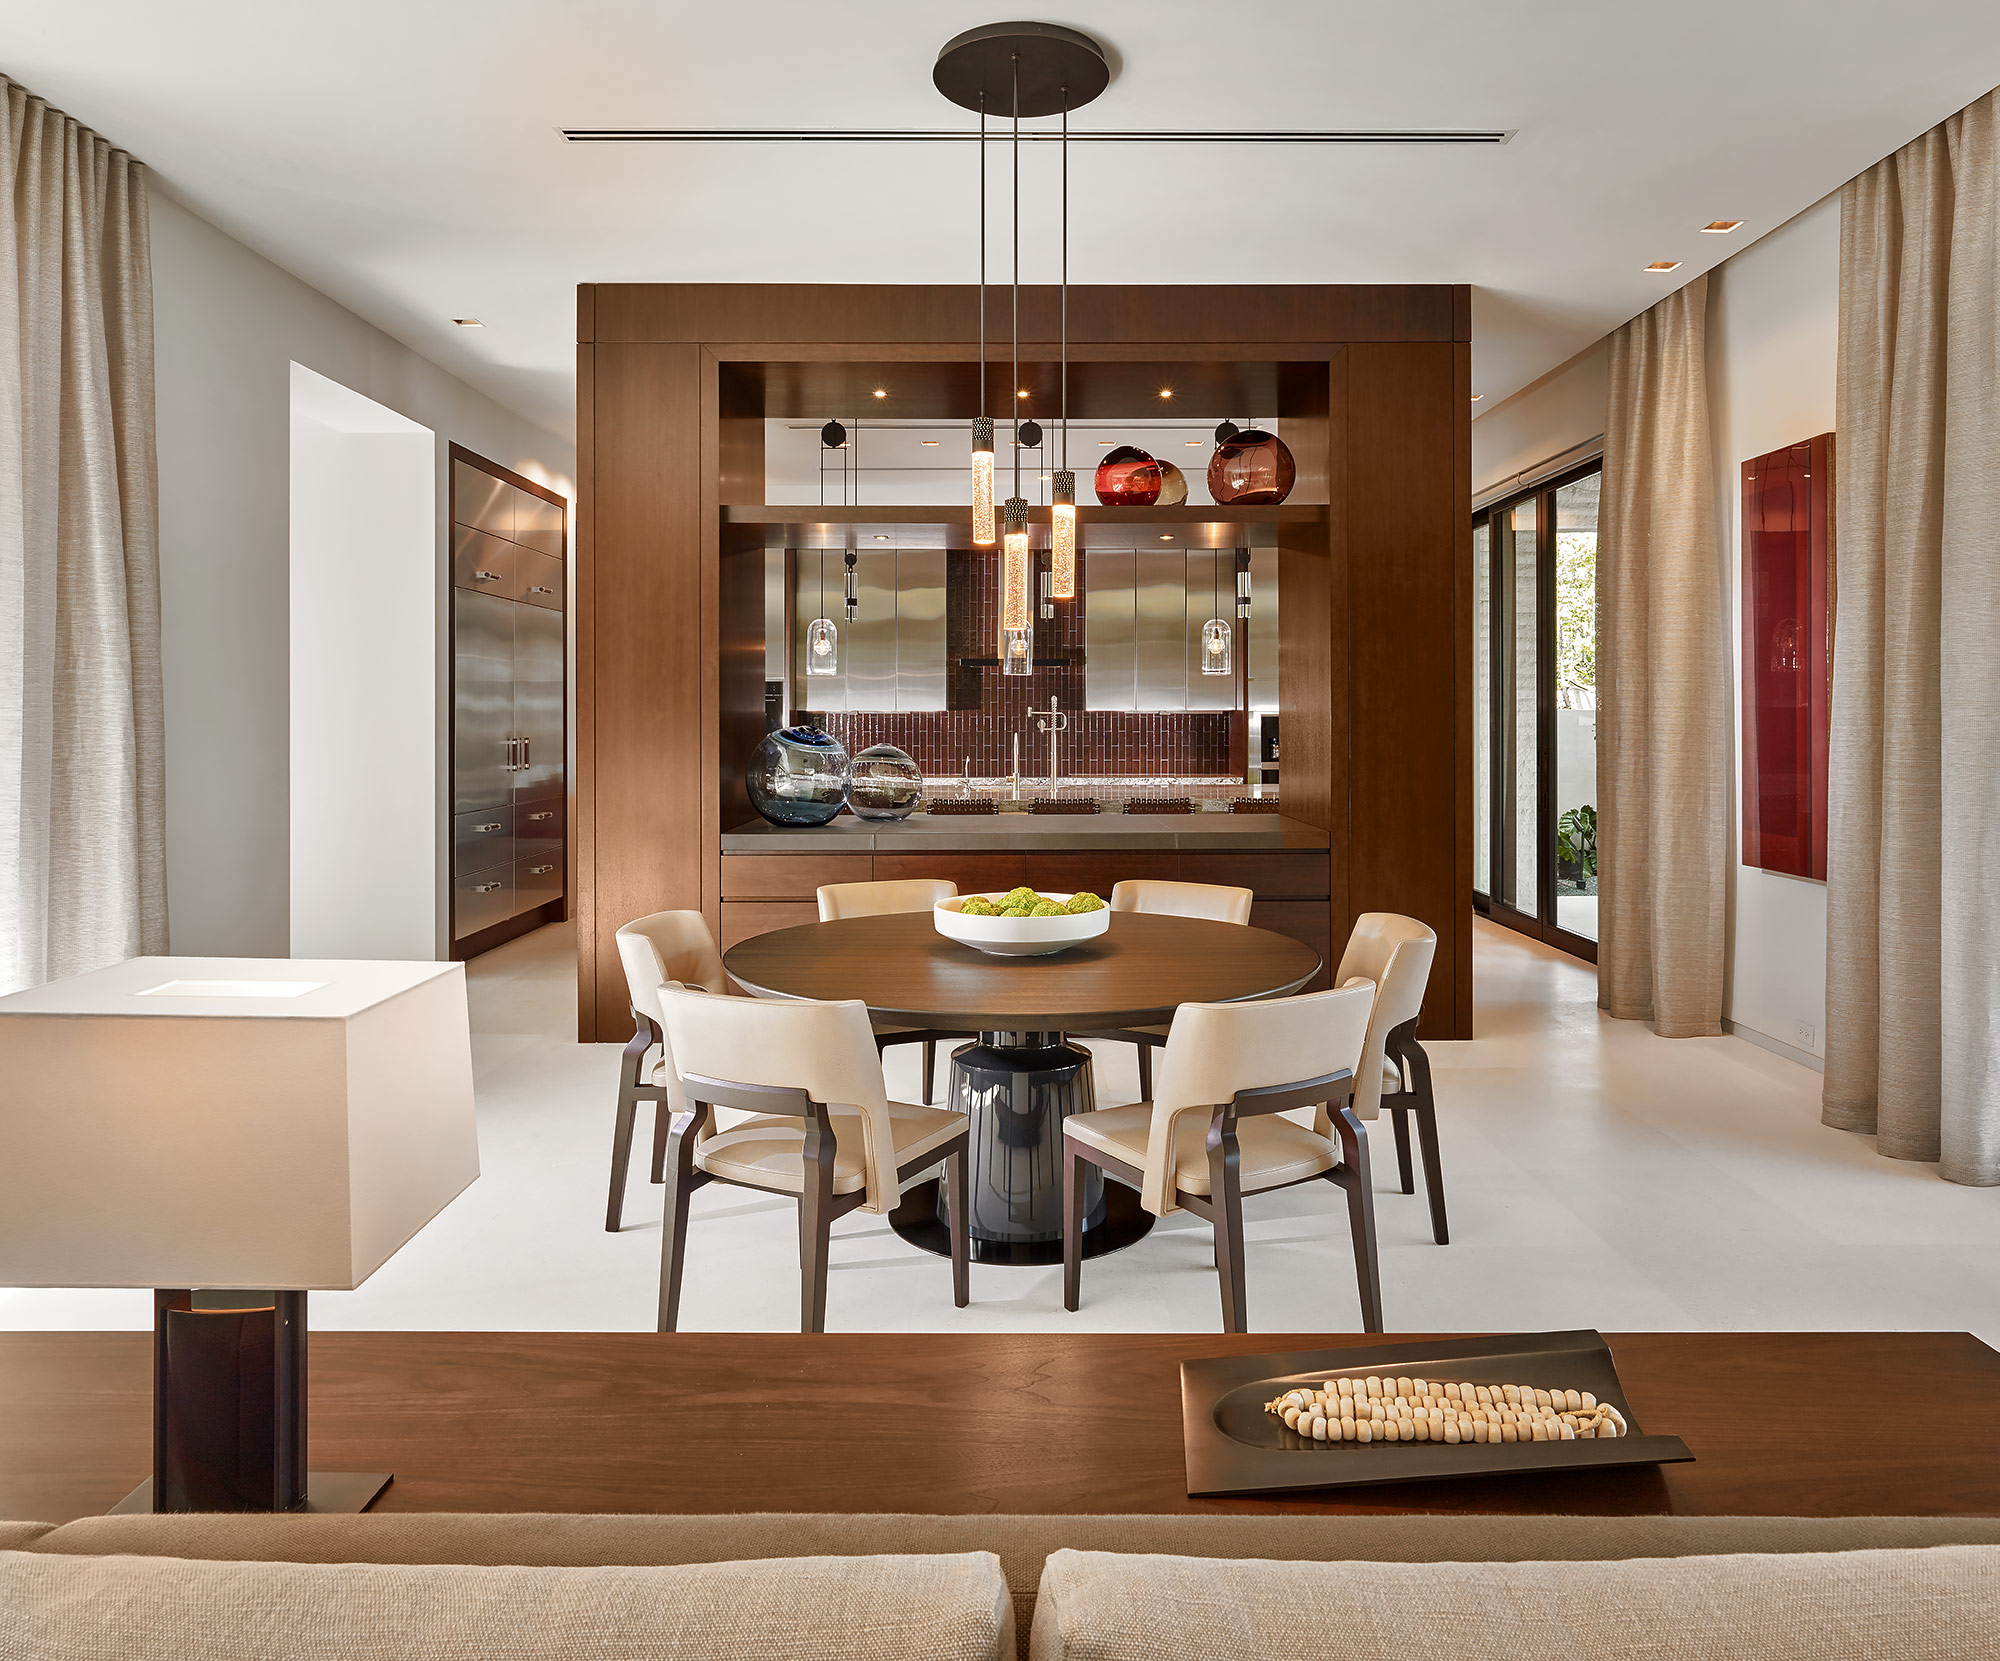 Modern-Miami-Interior-Decor-Dining-Kitchen-Woodwork